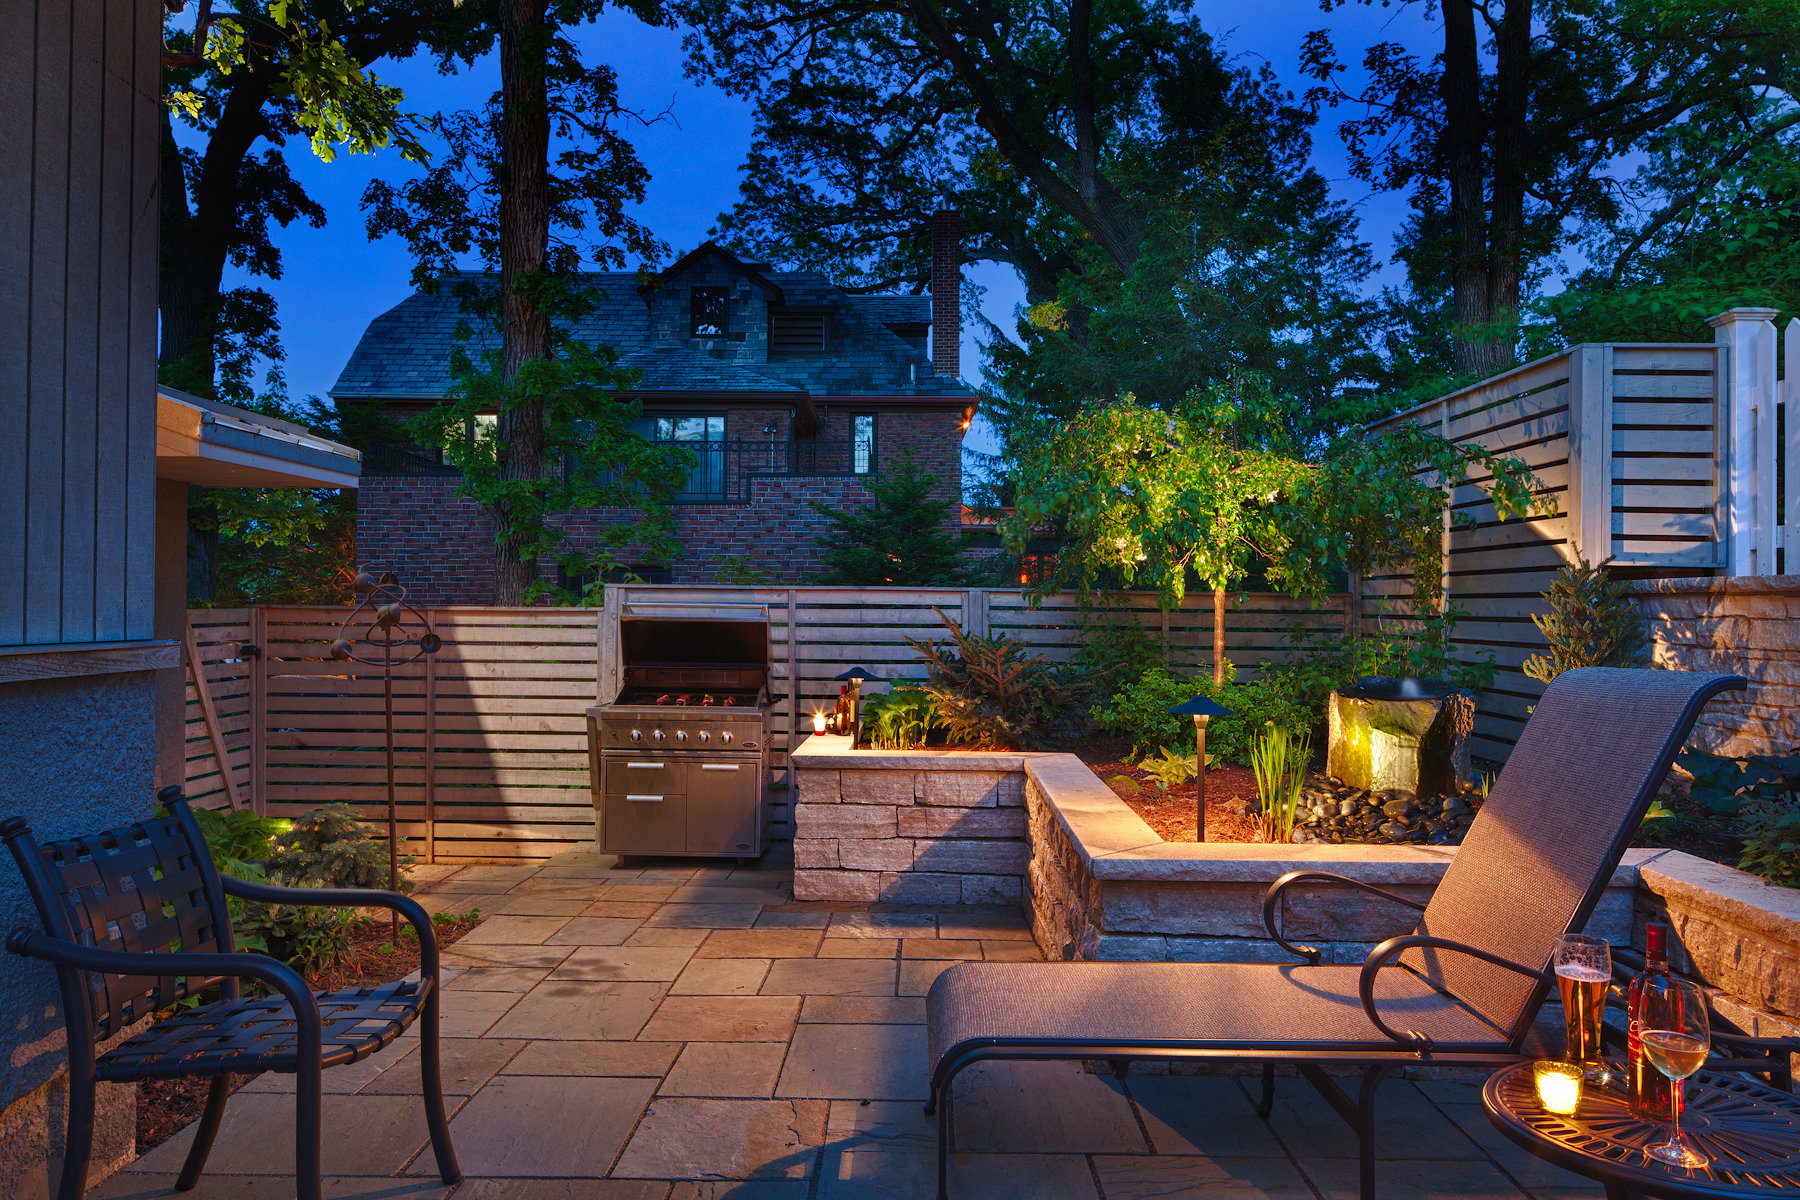 This Minneapolis backyard may be small, but it is full of wonder! Tabor Group Landscape added privacy with space to entertain and relax.